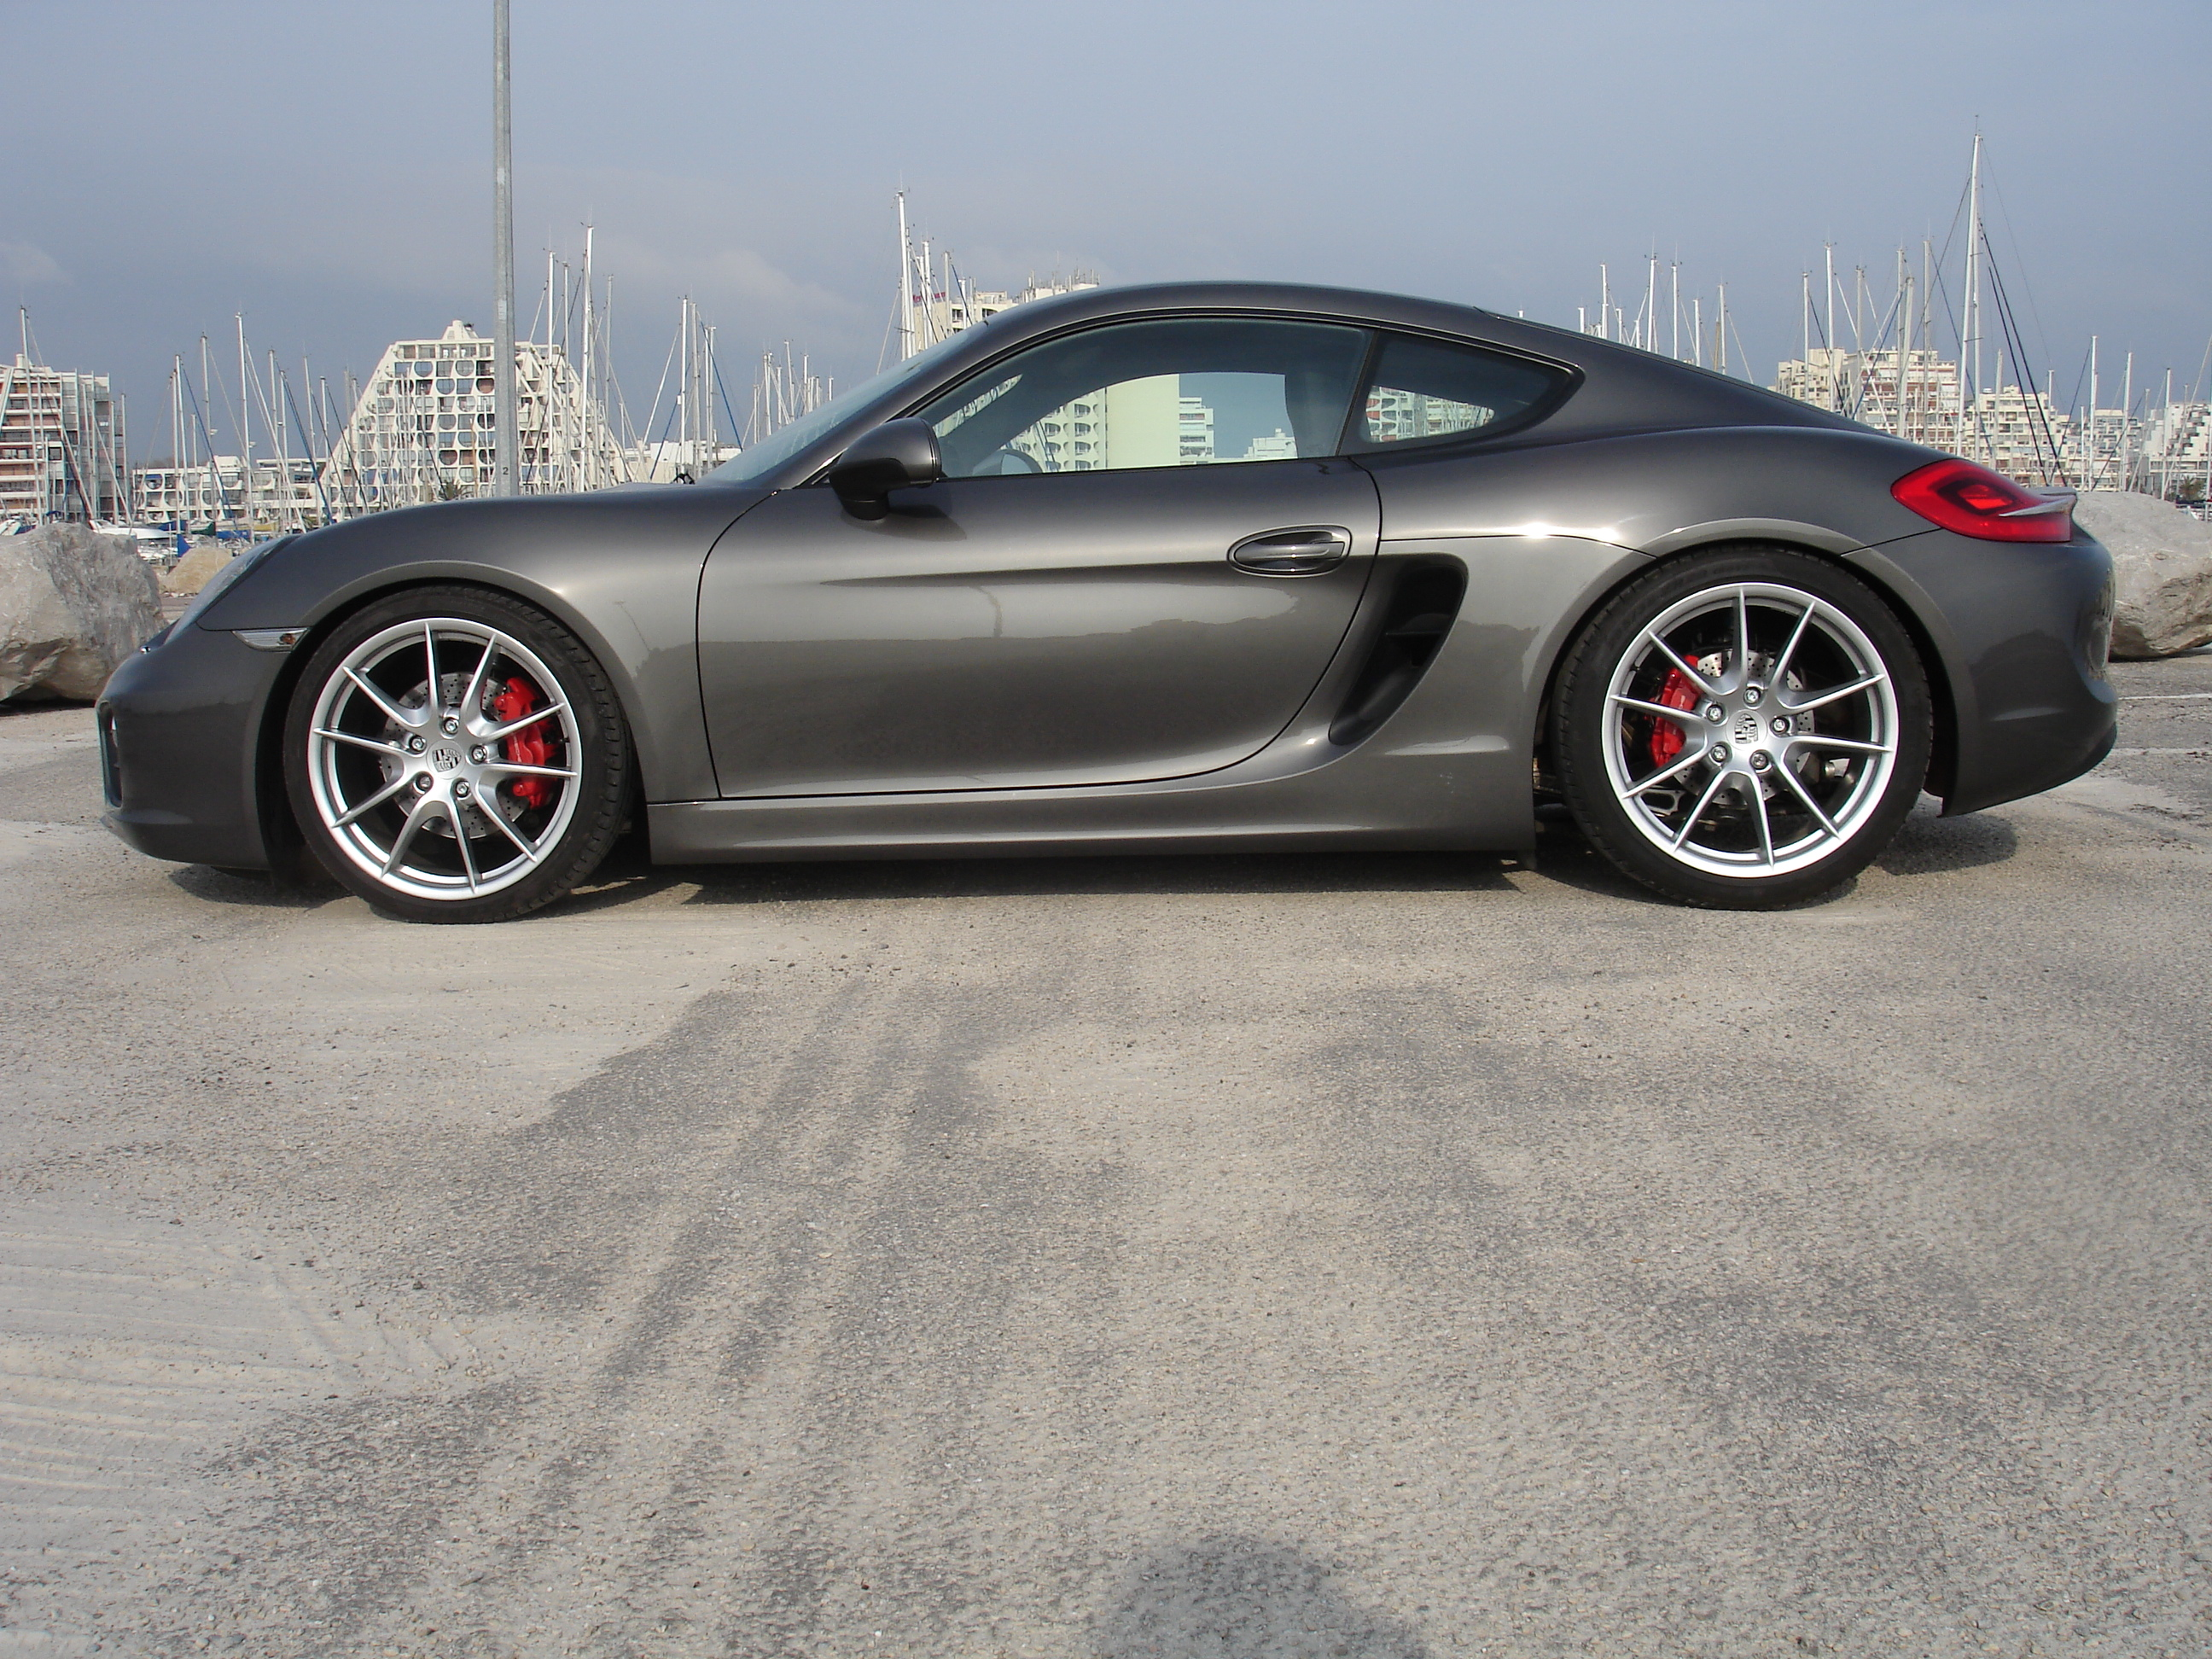 g omt rie des 981 4 chassis 12 2014 train av ar boxster cayman 911 porsche. Black Bedroom Furniture Sets. Home Design Ideas